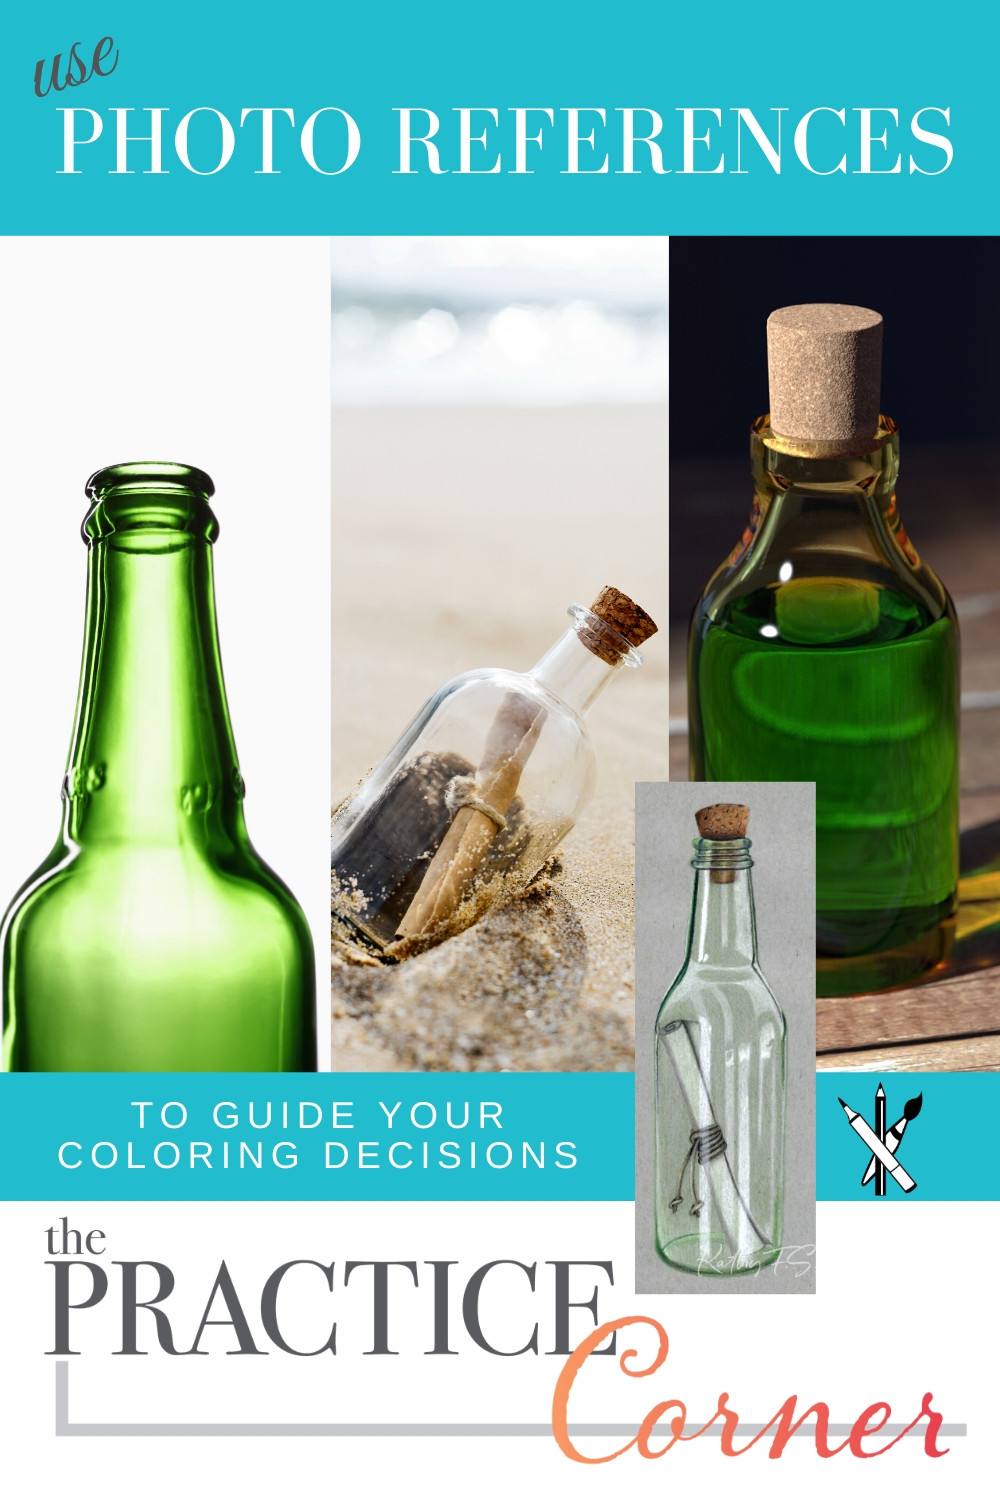 How to improve your coloring | How to color realistic glass | #coloredpencilpractice  #thepracticecorner #realisticcoloring #coloringtechniques #coloringtips